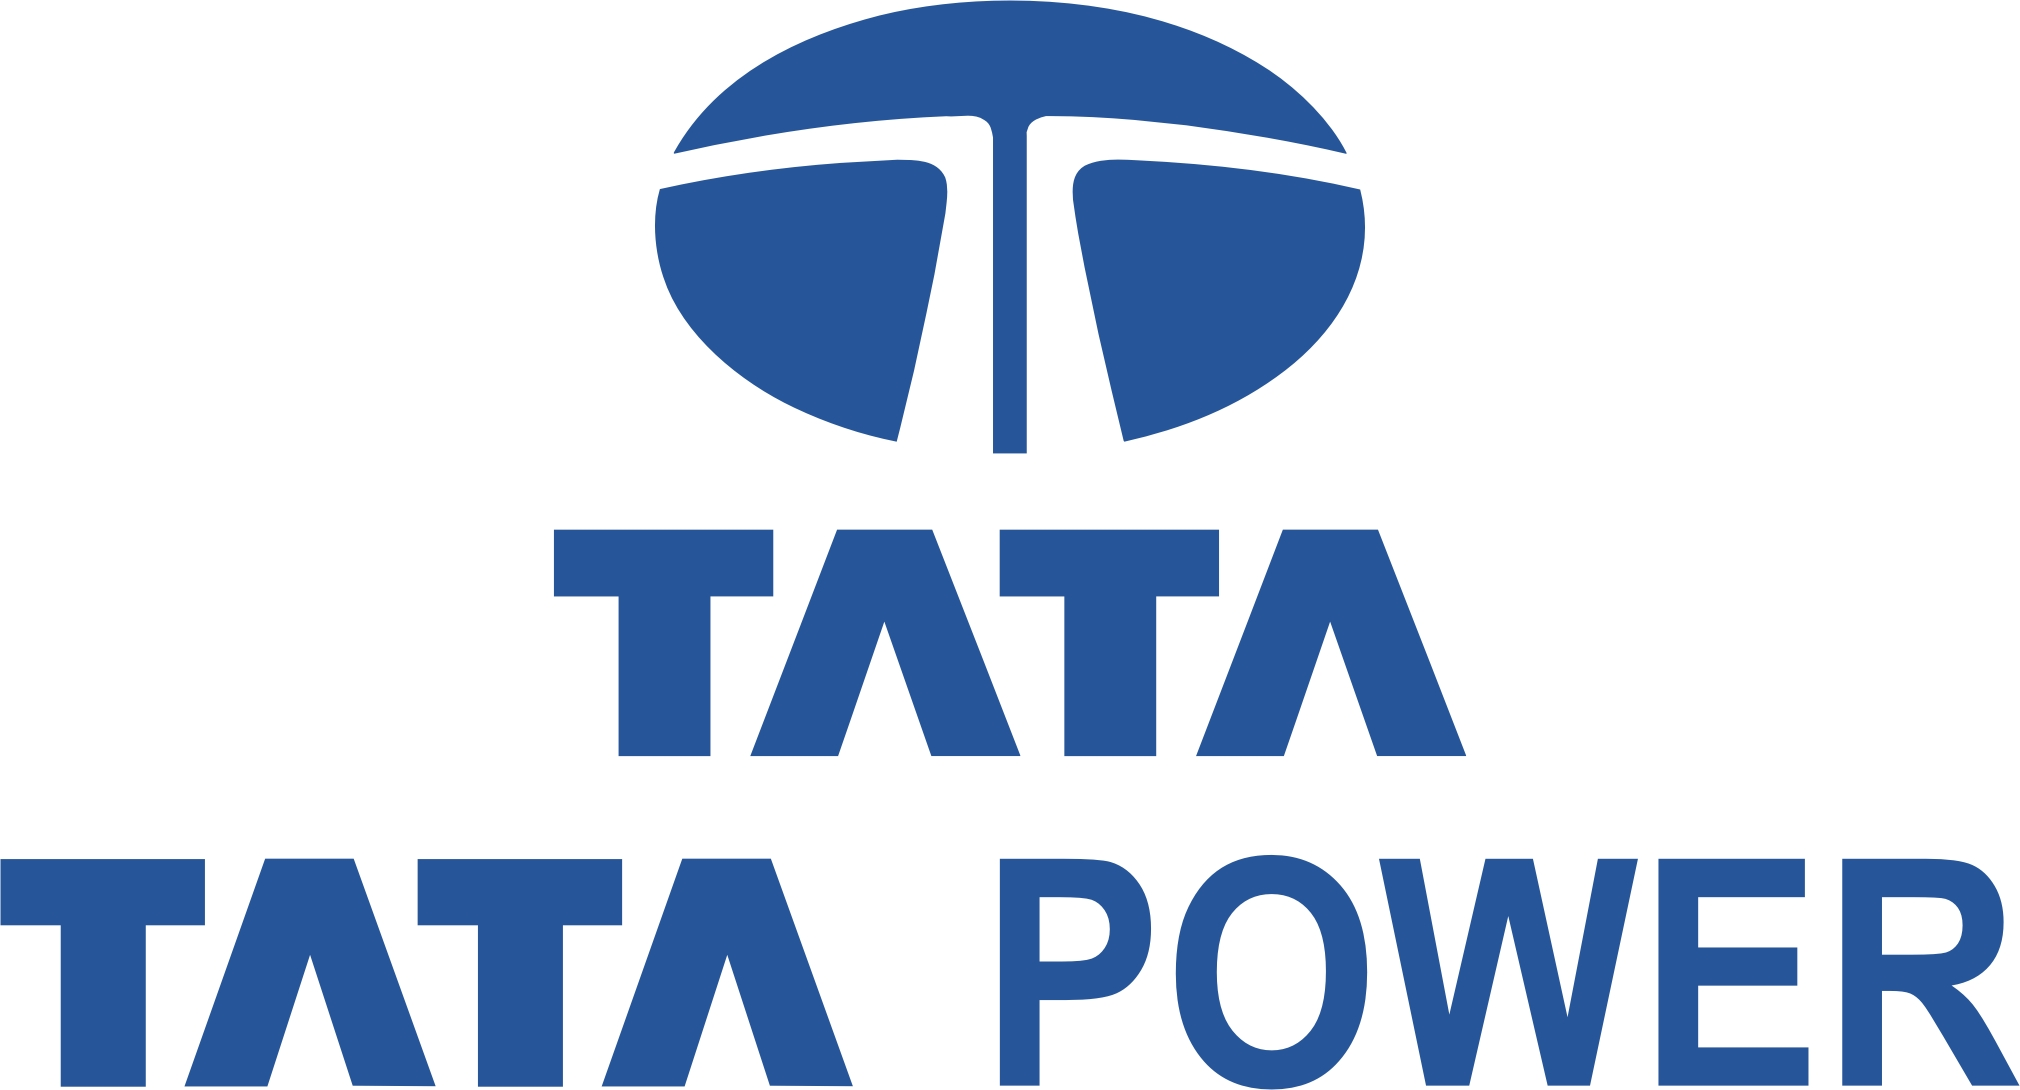 Tata Power « Logos & Brands Directory